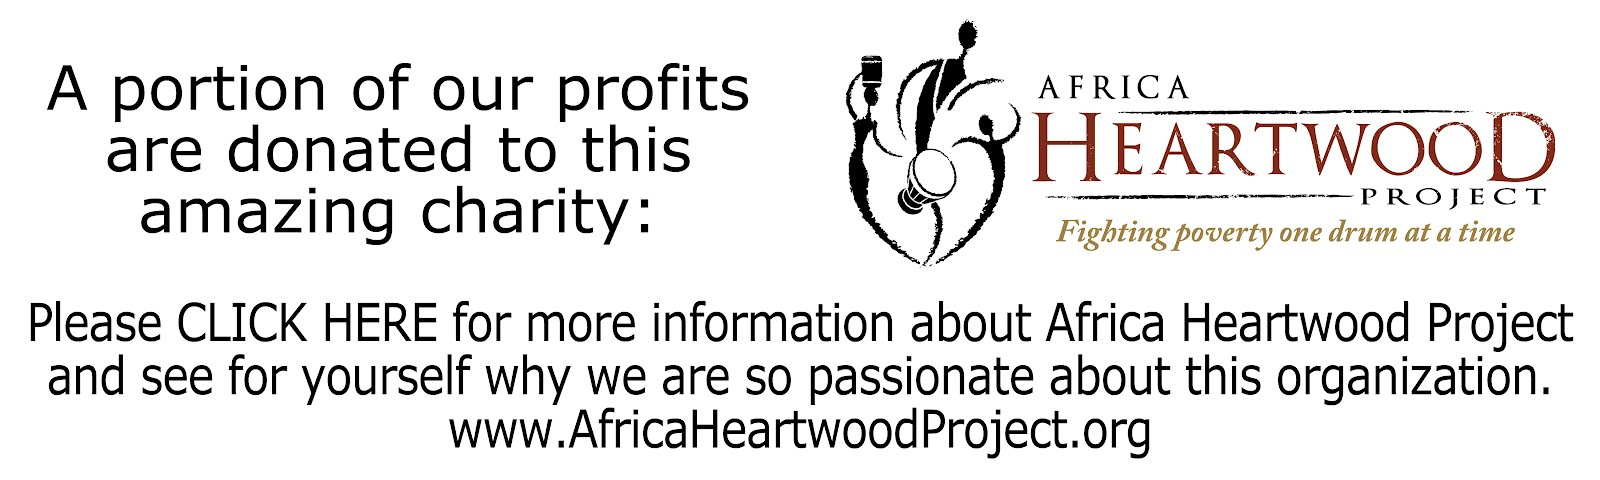 africaheartwoodproject.org